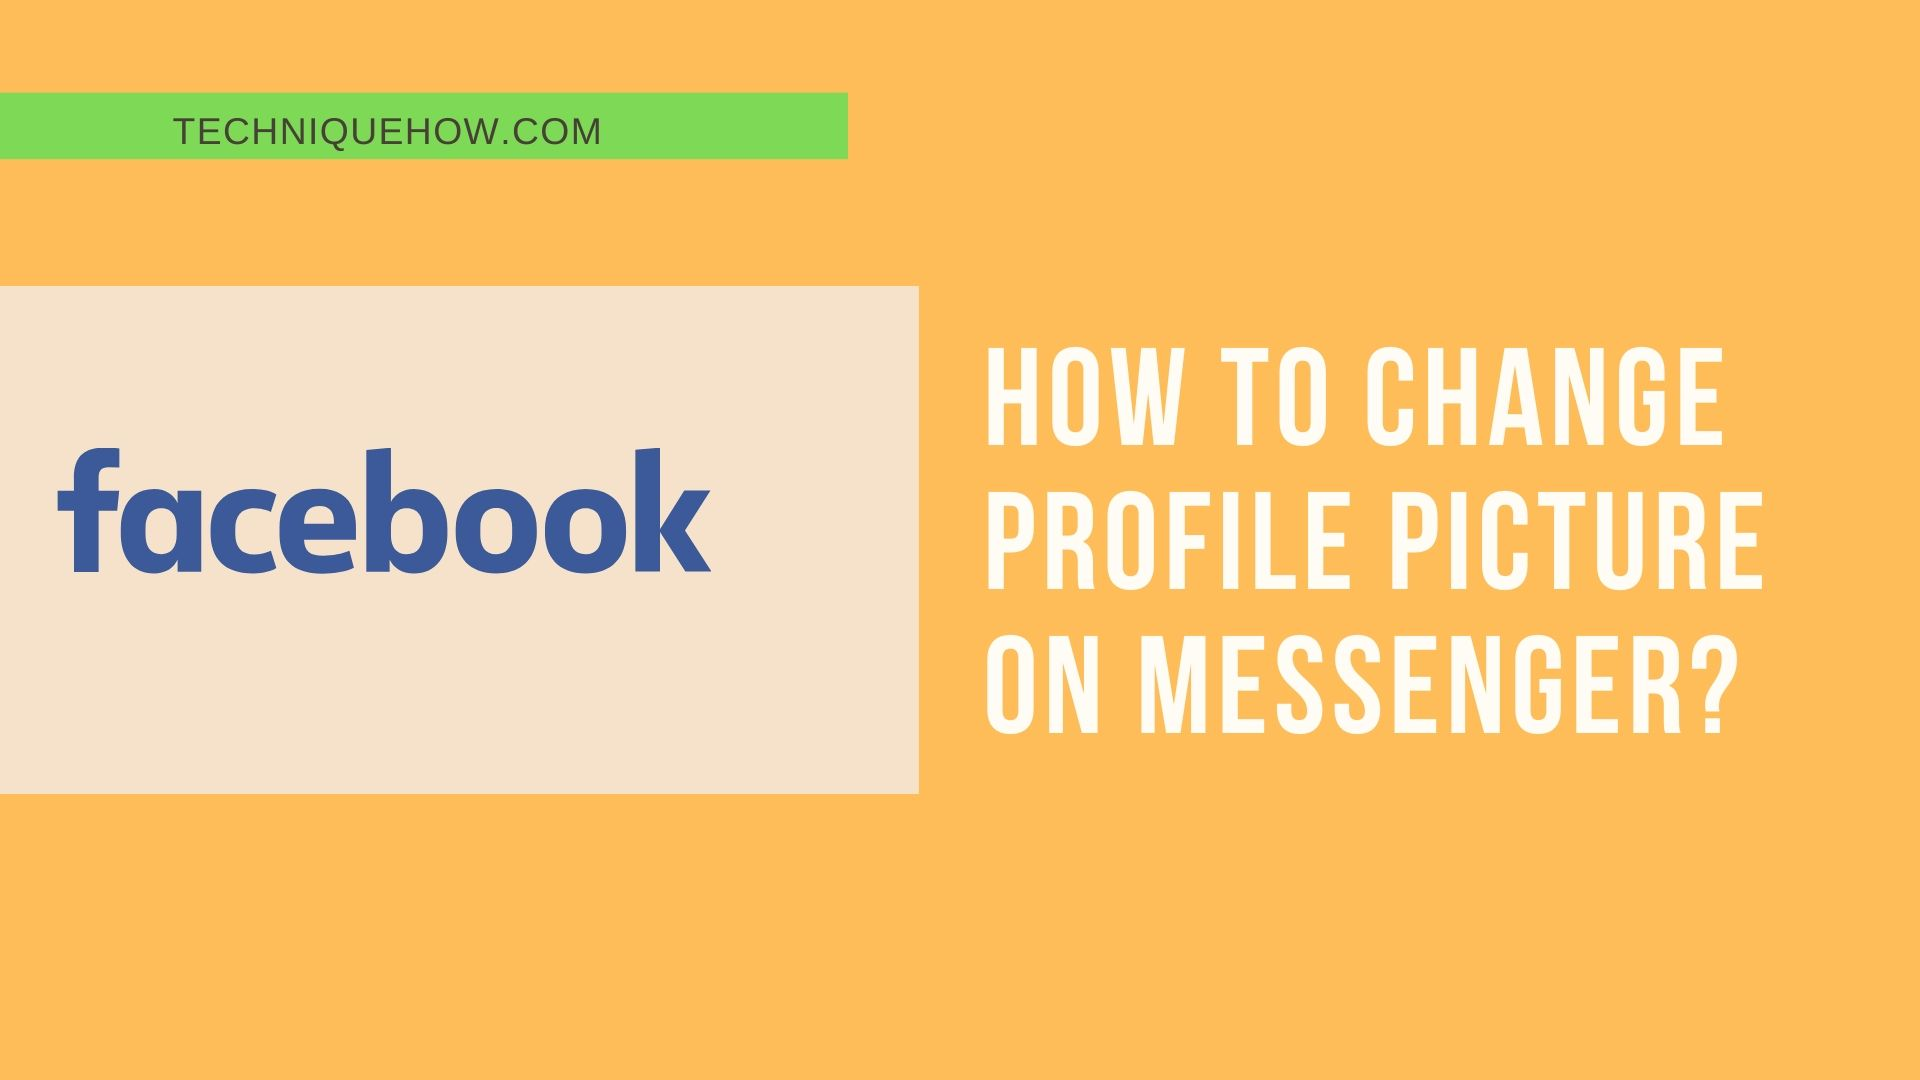 Change the Profile Picture from Messenger